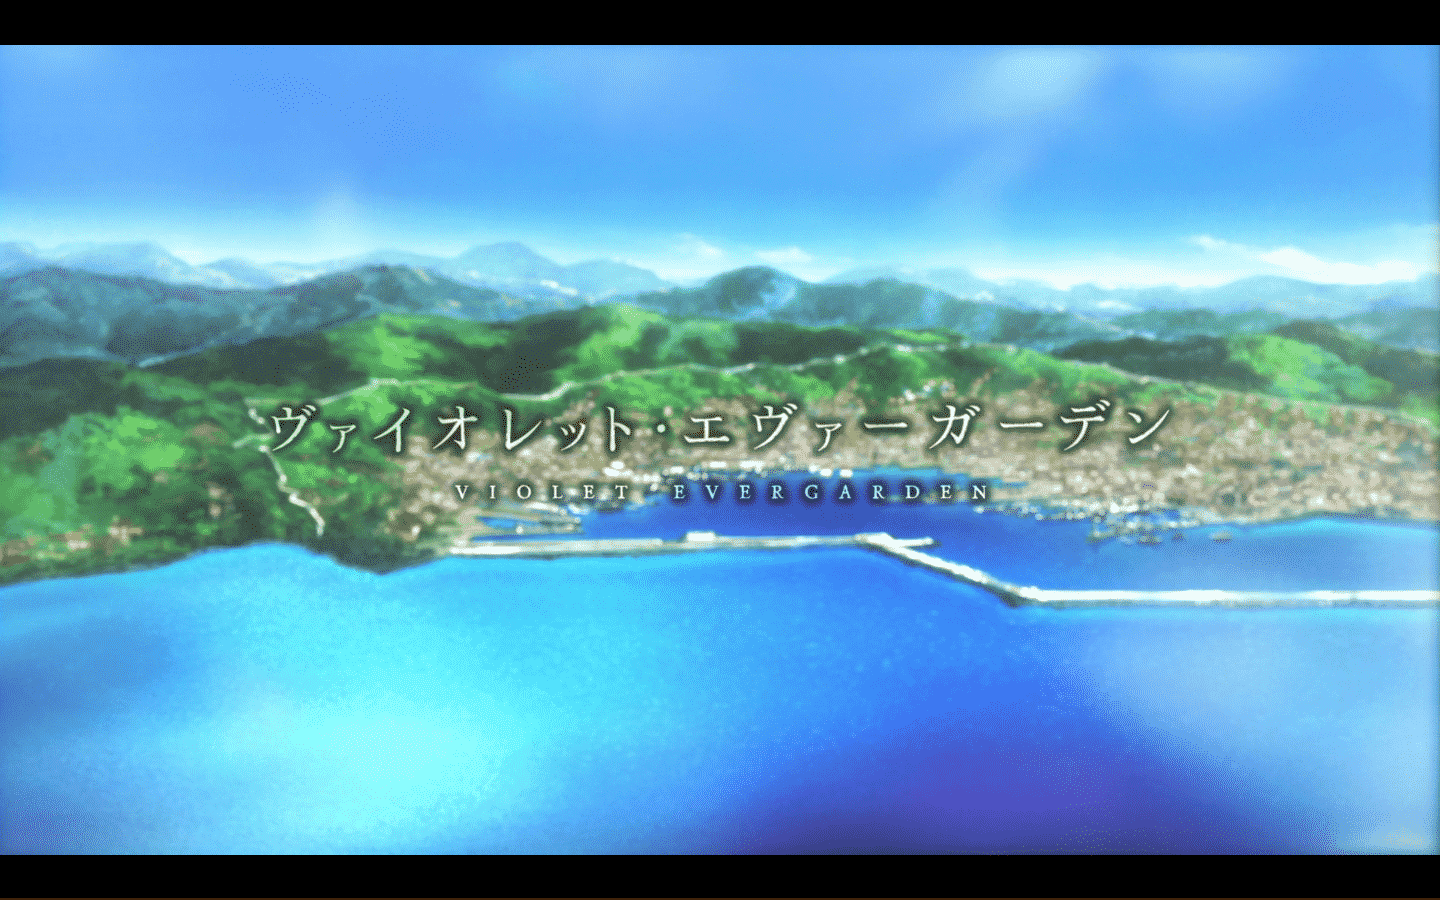 The title card for Violet Evergarden